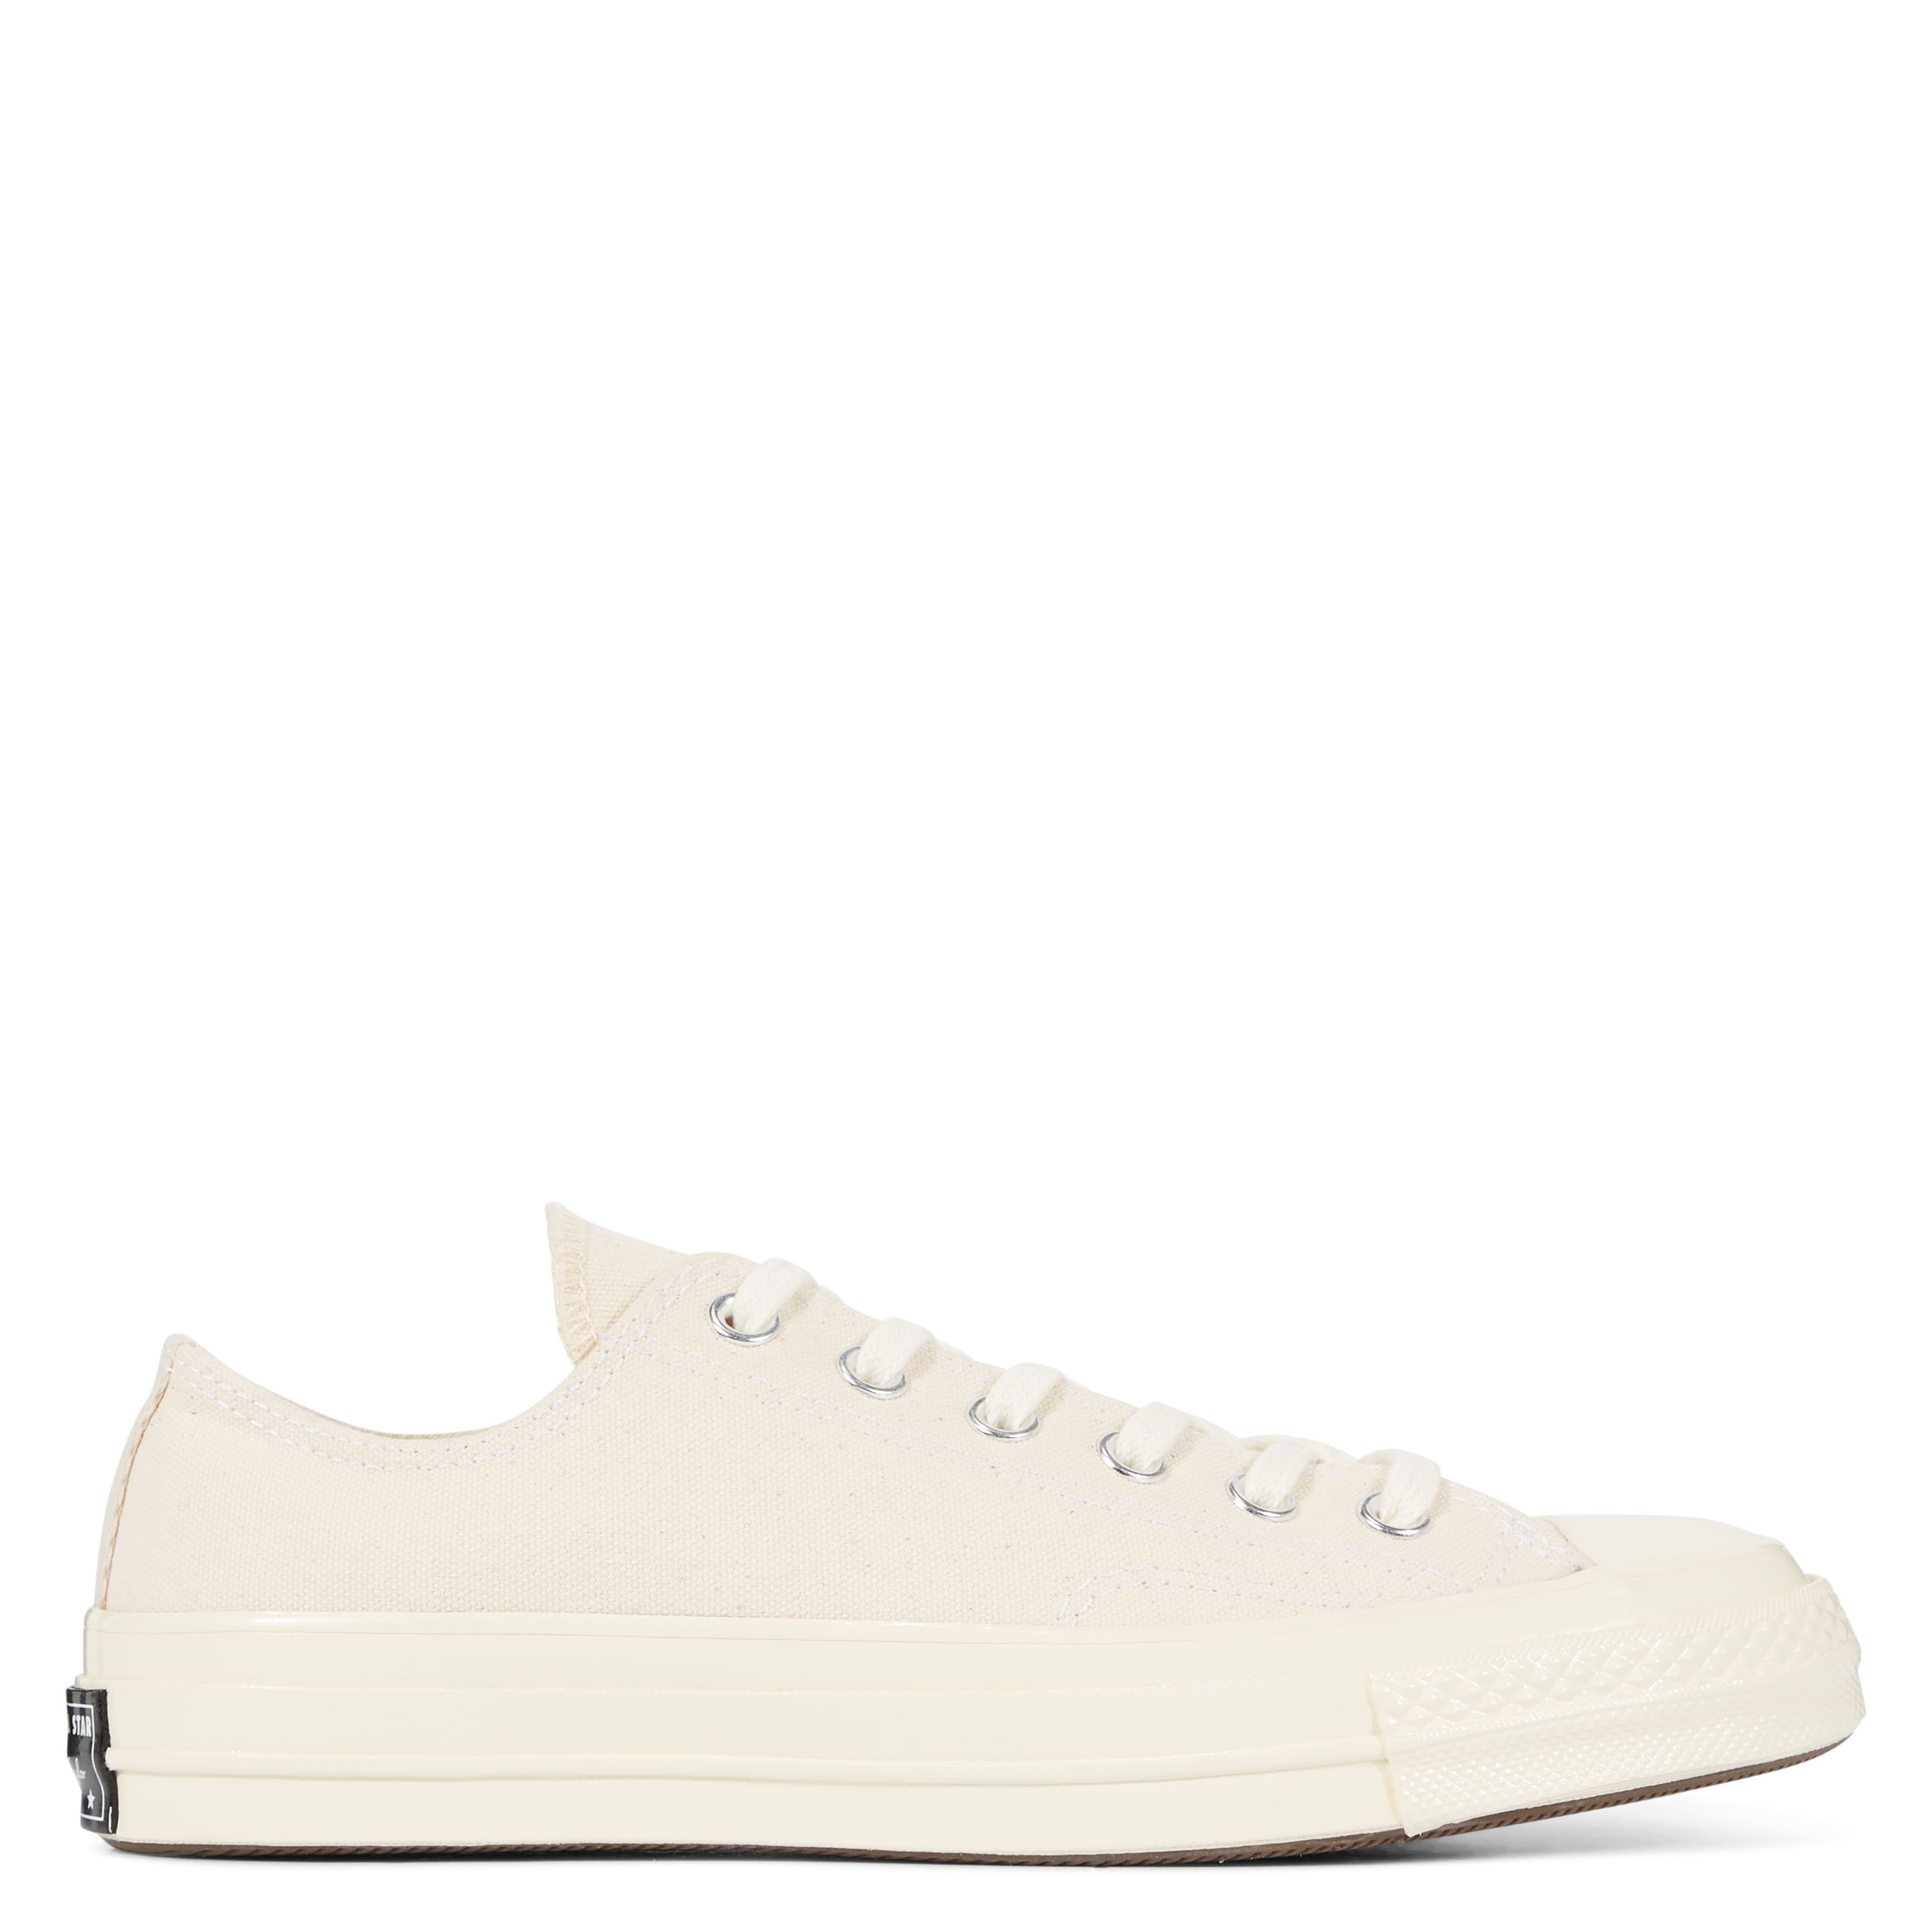 Chuck 70 Vintage Canvas Low Trainers by